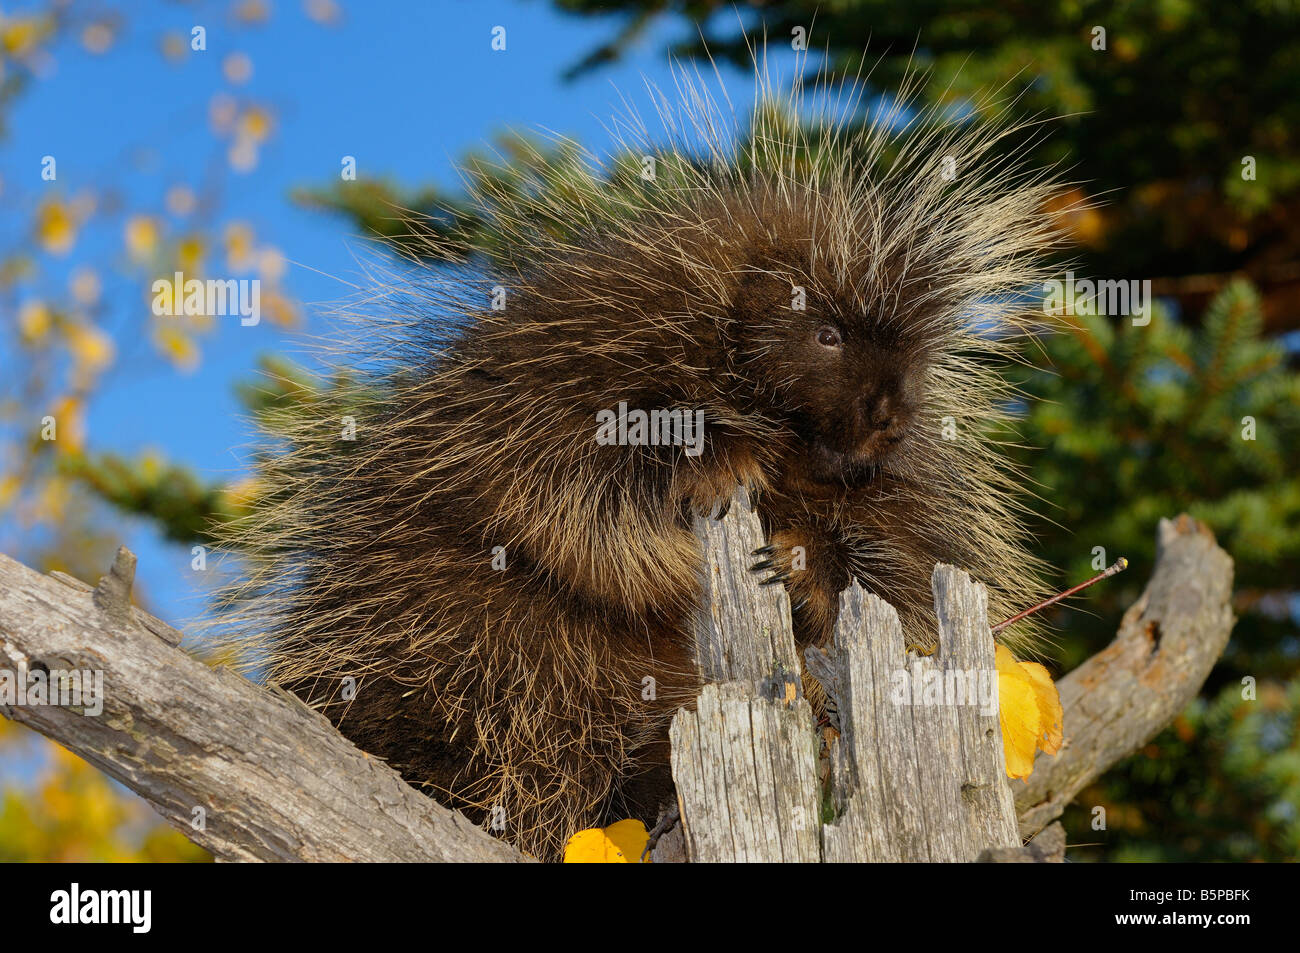 North American Porcupine holding on to a dead tree stump in an open forest in the Fall Erethizon Dorsatum Minnesota Stock Photo